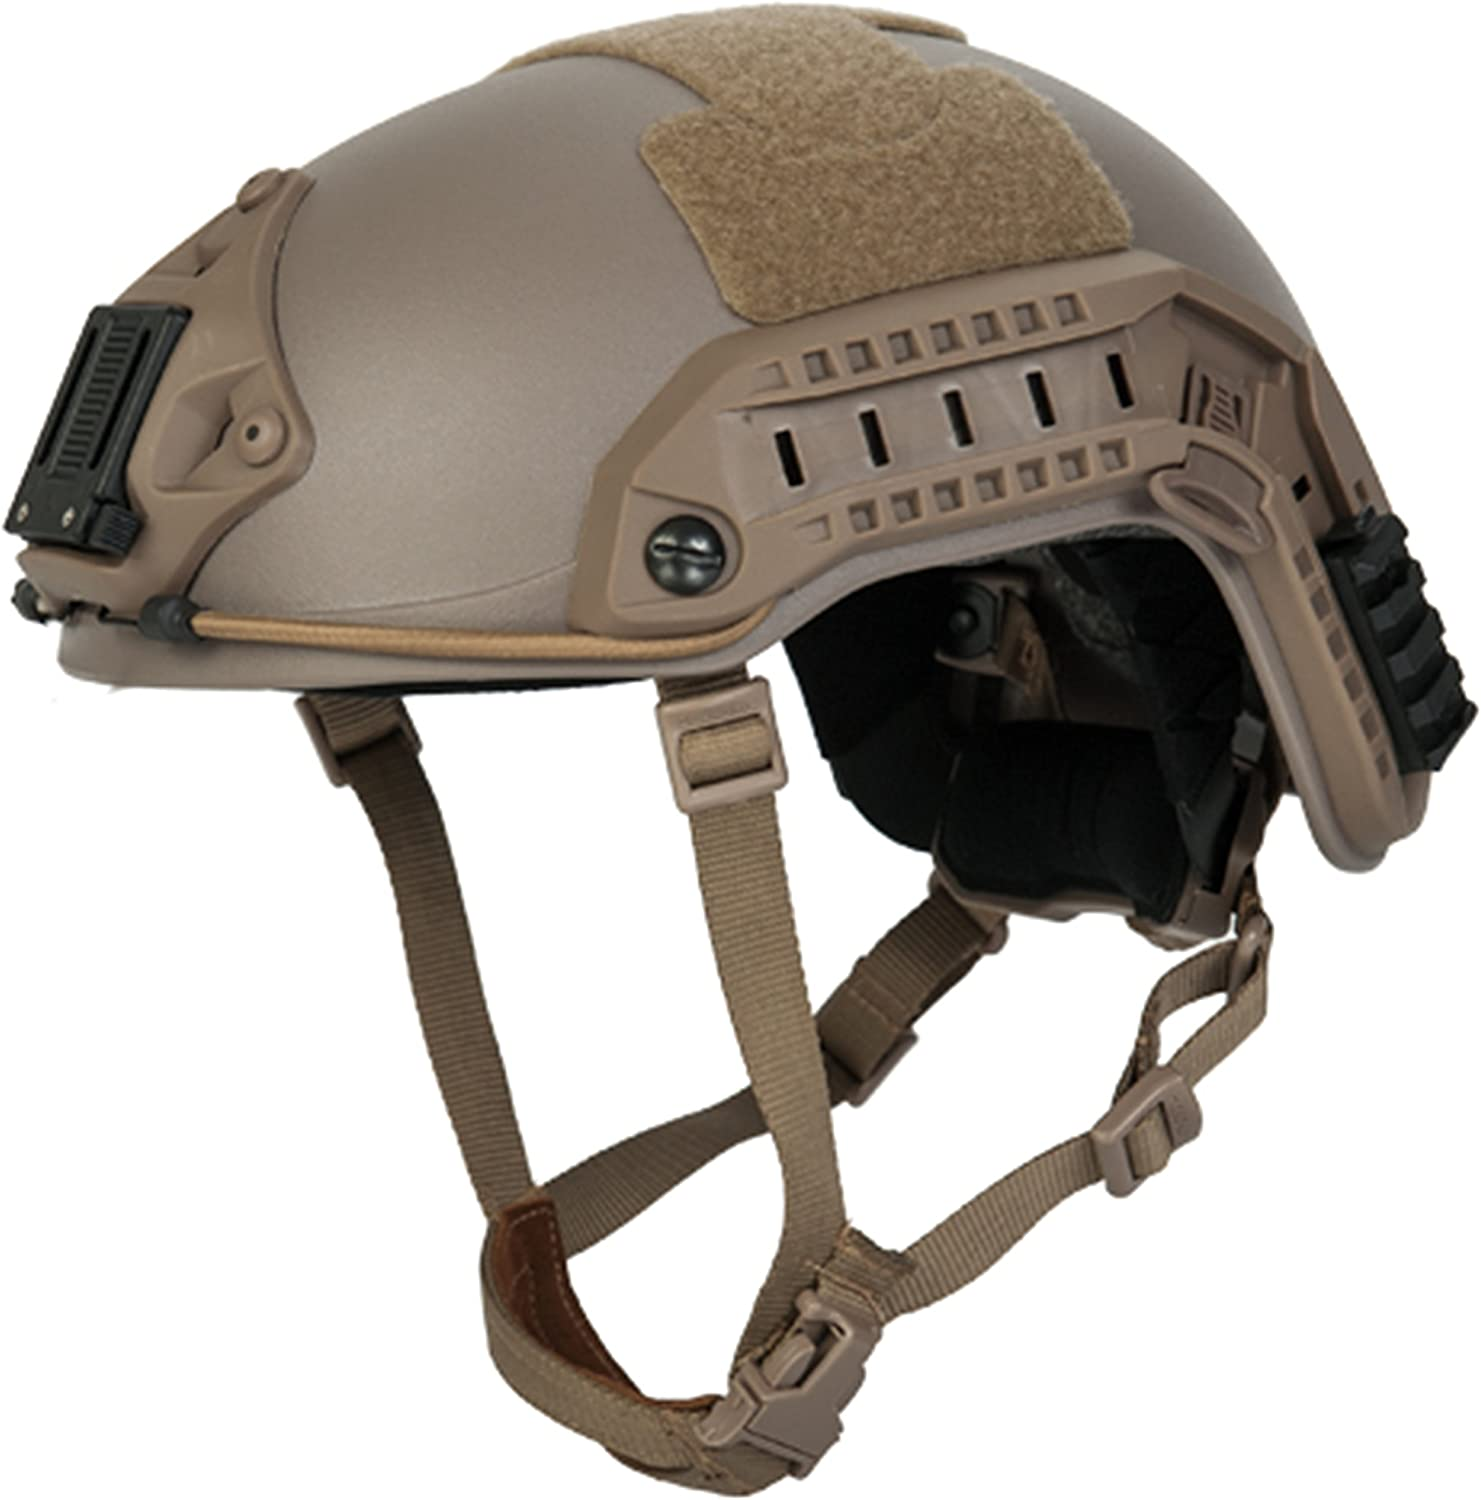 This is the image of the Lancer Tactical Maritime Helmet, with straps hanging, in brown color. Image has a white background color.